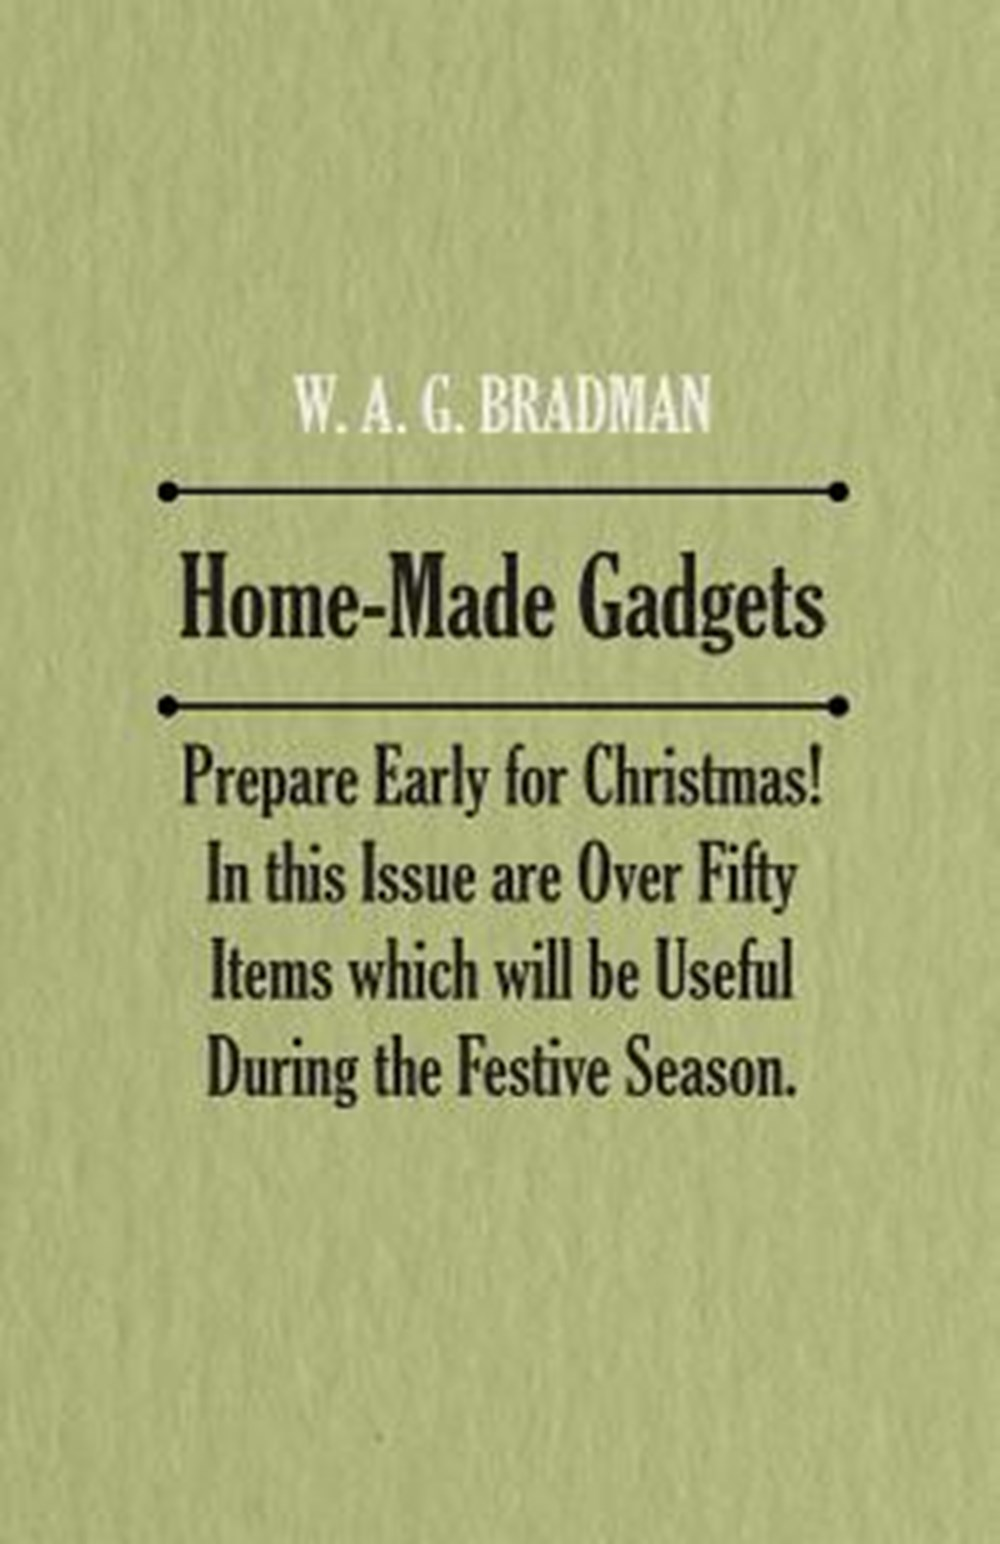 Home-Made Gadgets - Prepare Early for Christmas! In this Issue are Over Fifty Items which will be Us